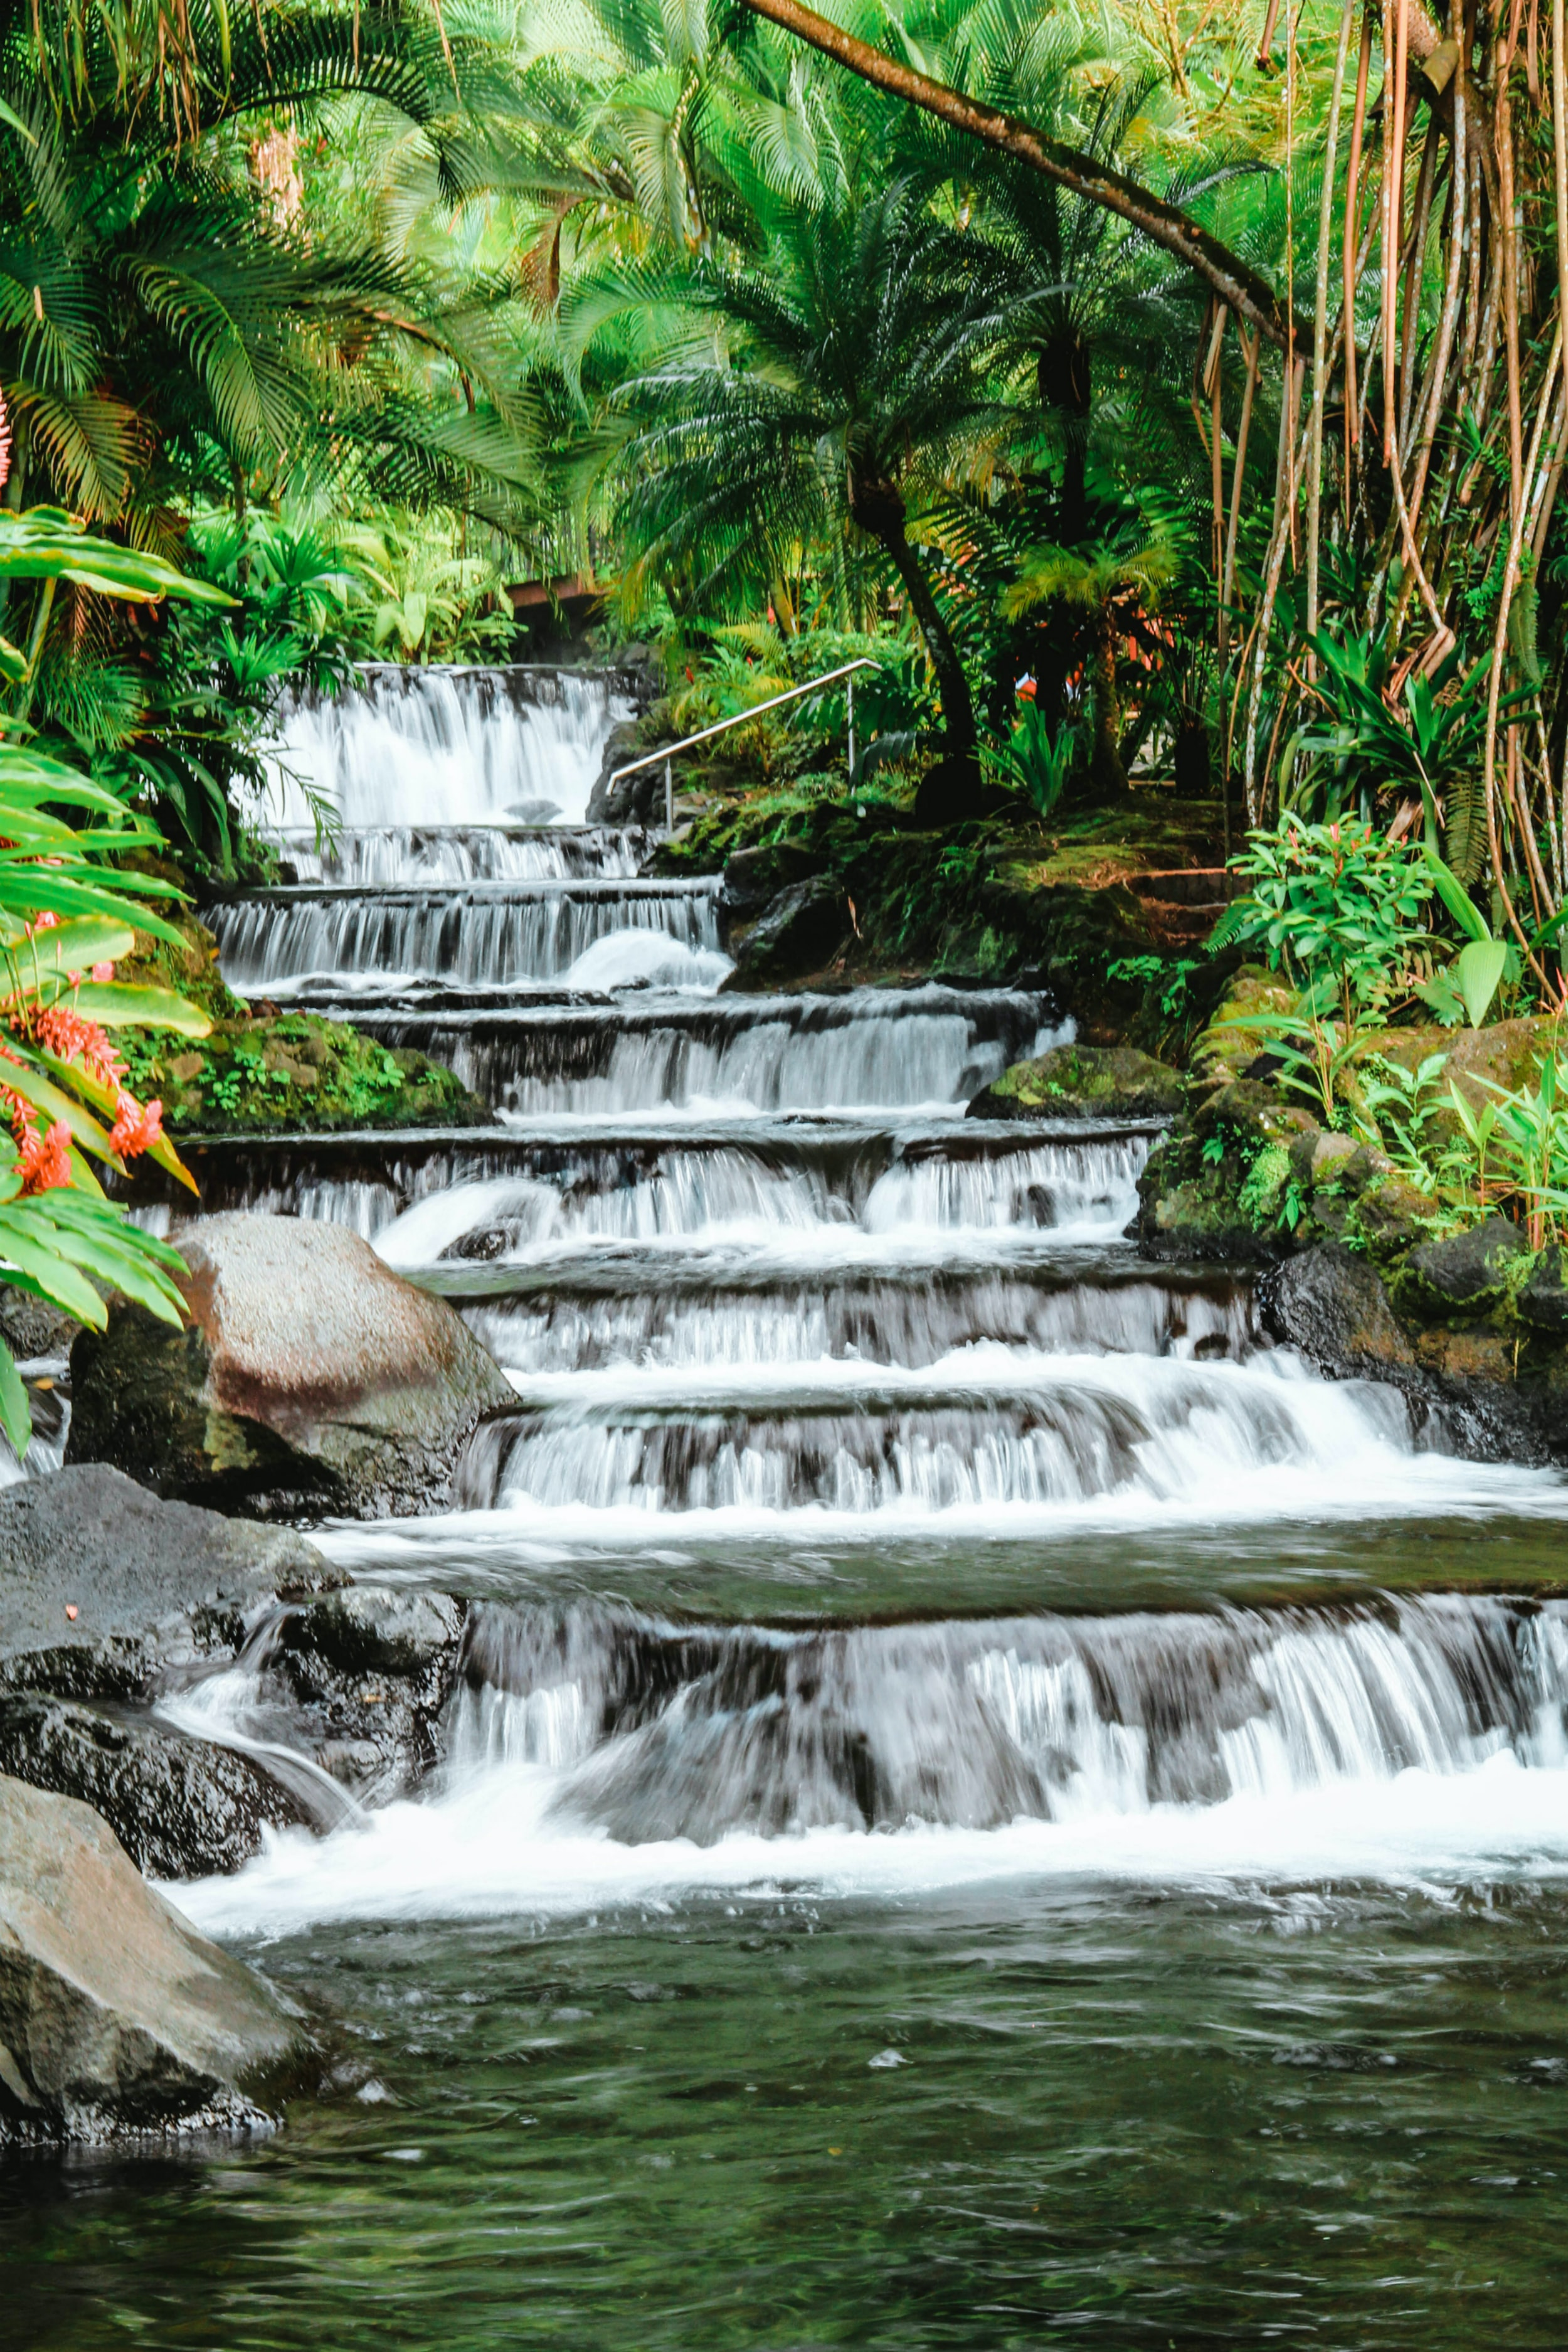 27 Adventurous Things to Do in Costa Rica